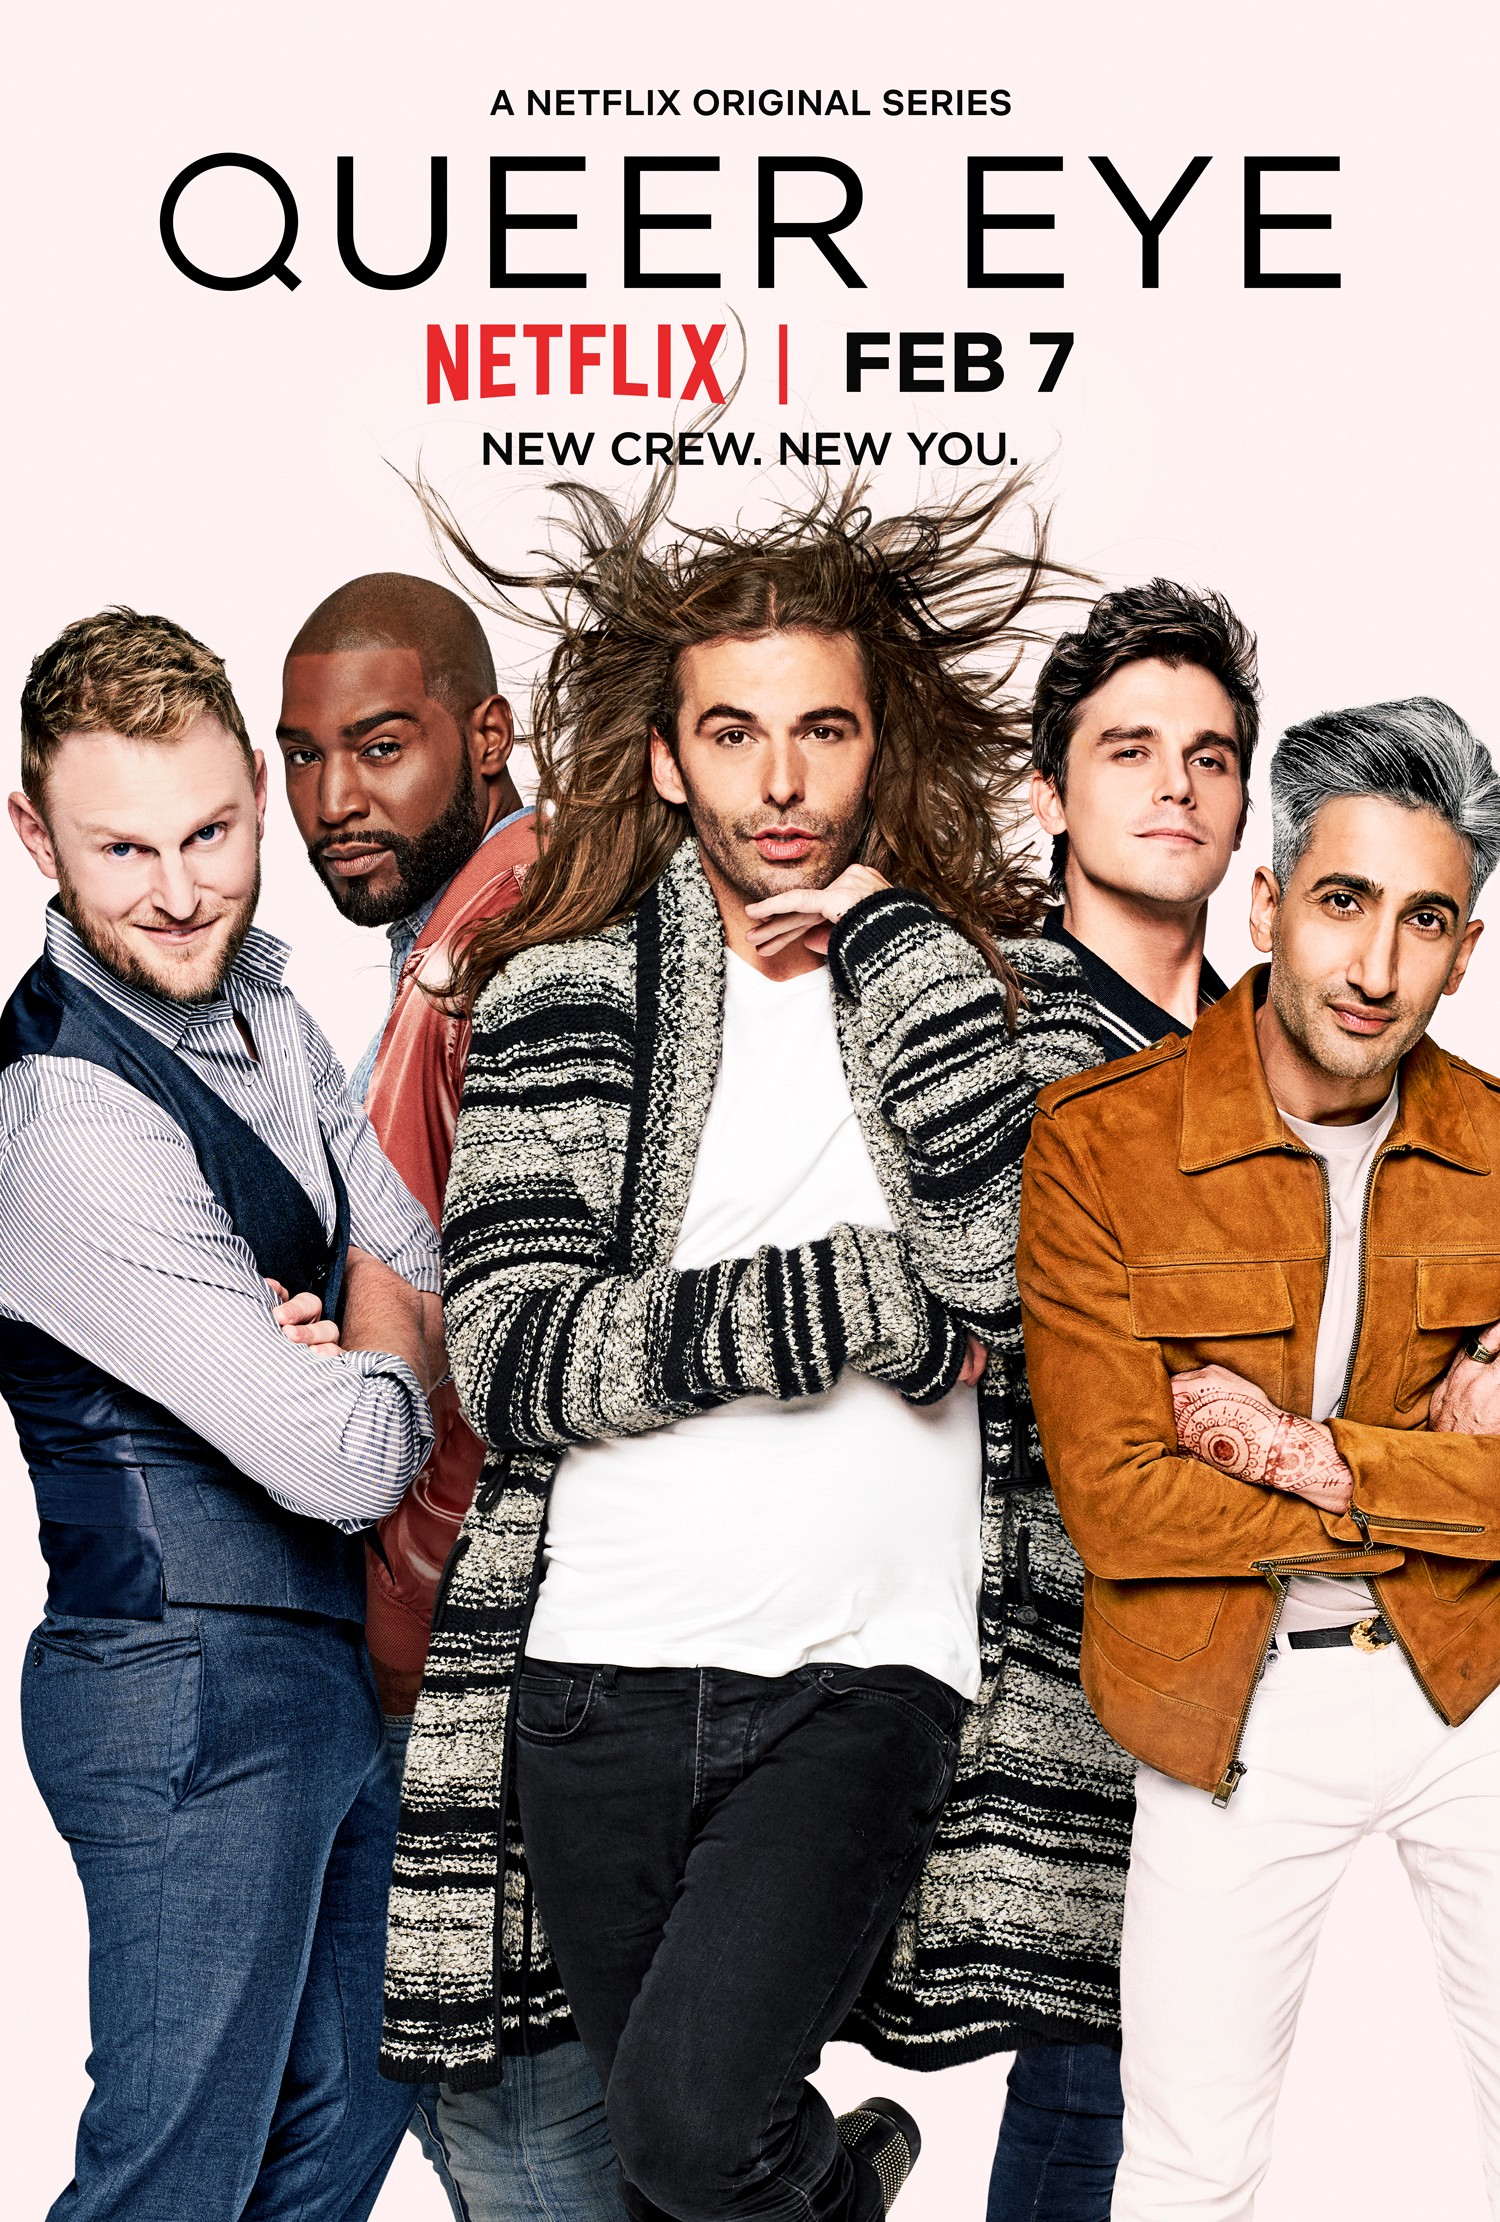 Queer Eye - Courtesy of Netflix